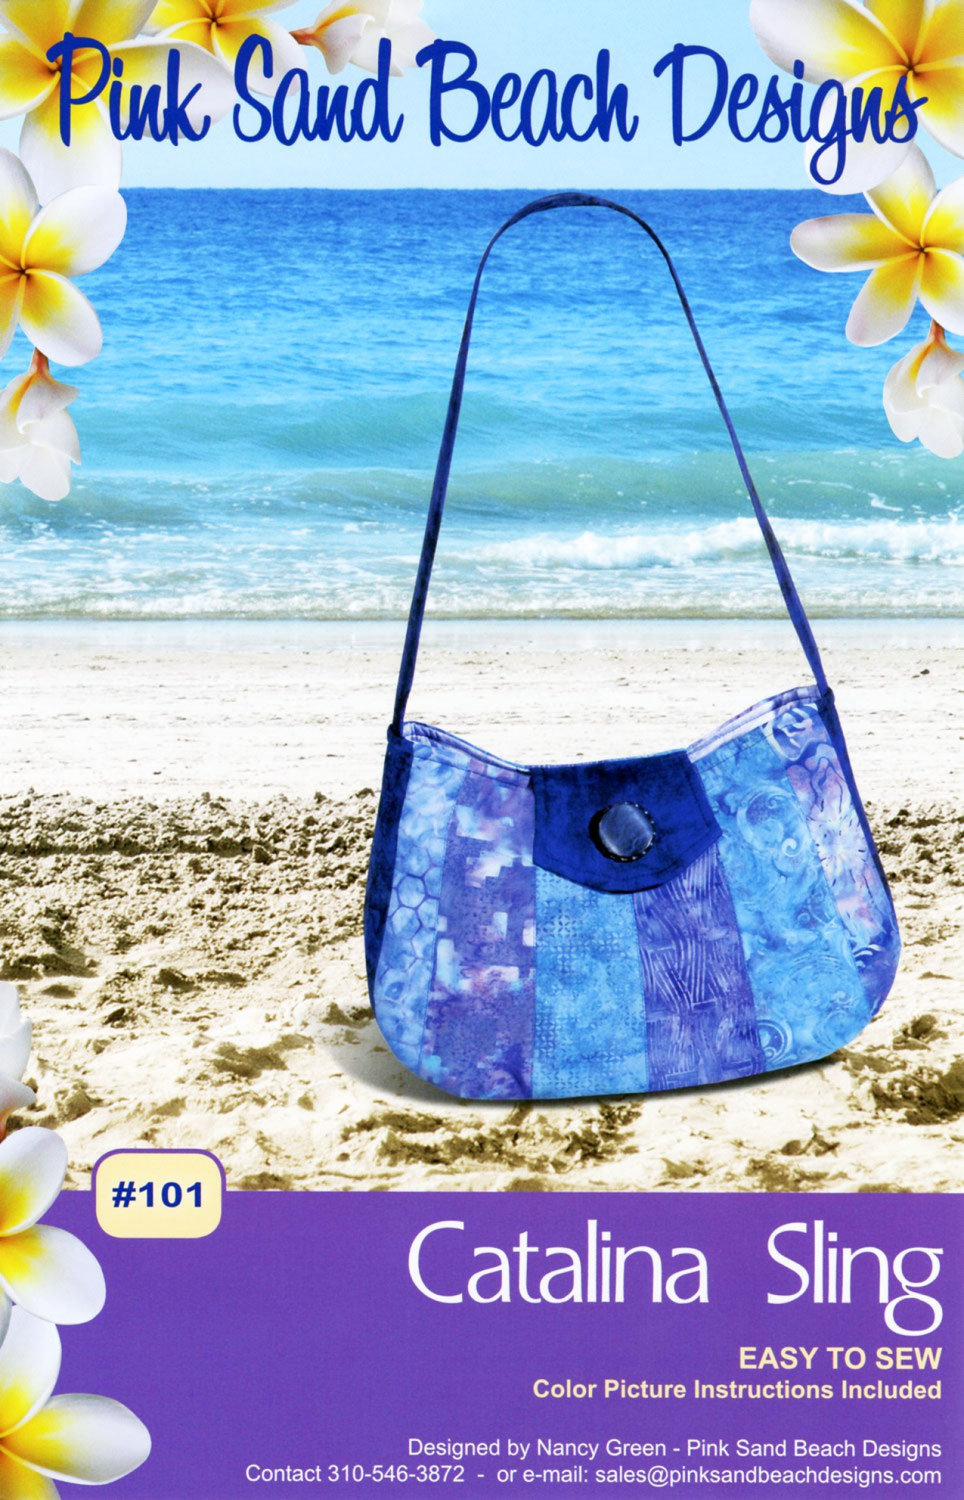 Catalina Sling Sewing Pattern From Pink Sand Beach Designs